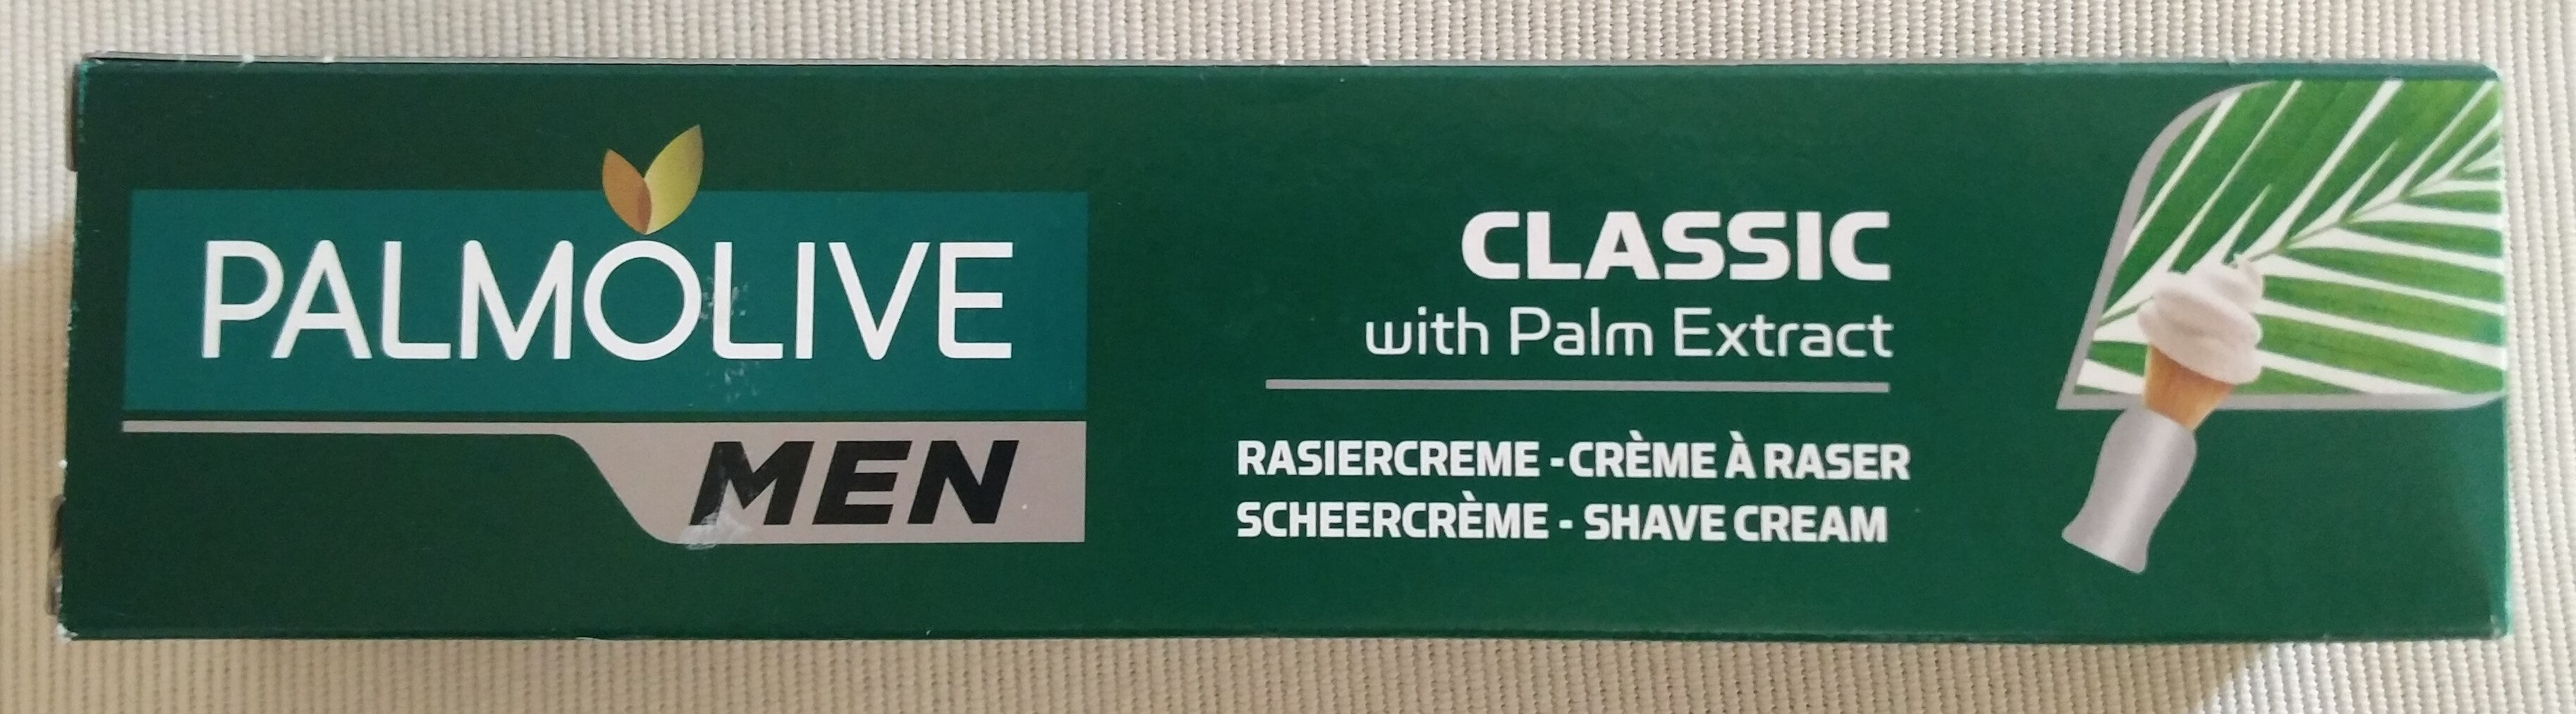 Rasiercreme Classic (with Palm Extract) - Продукт - de